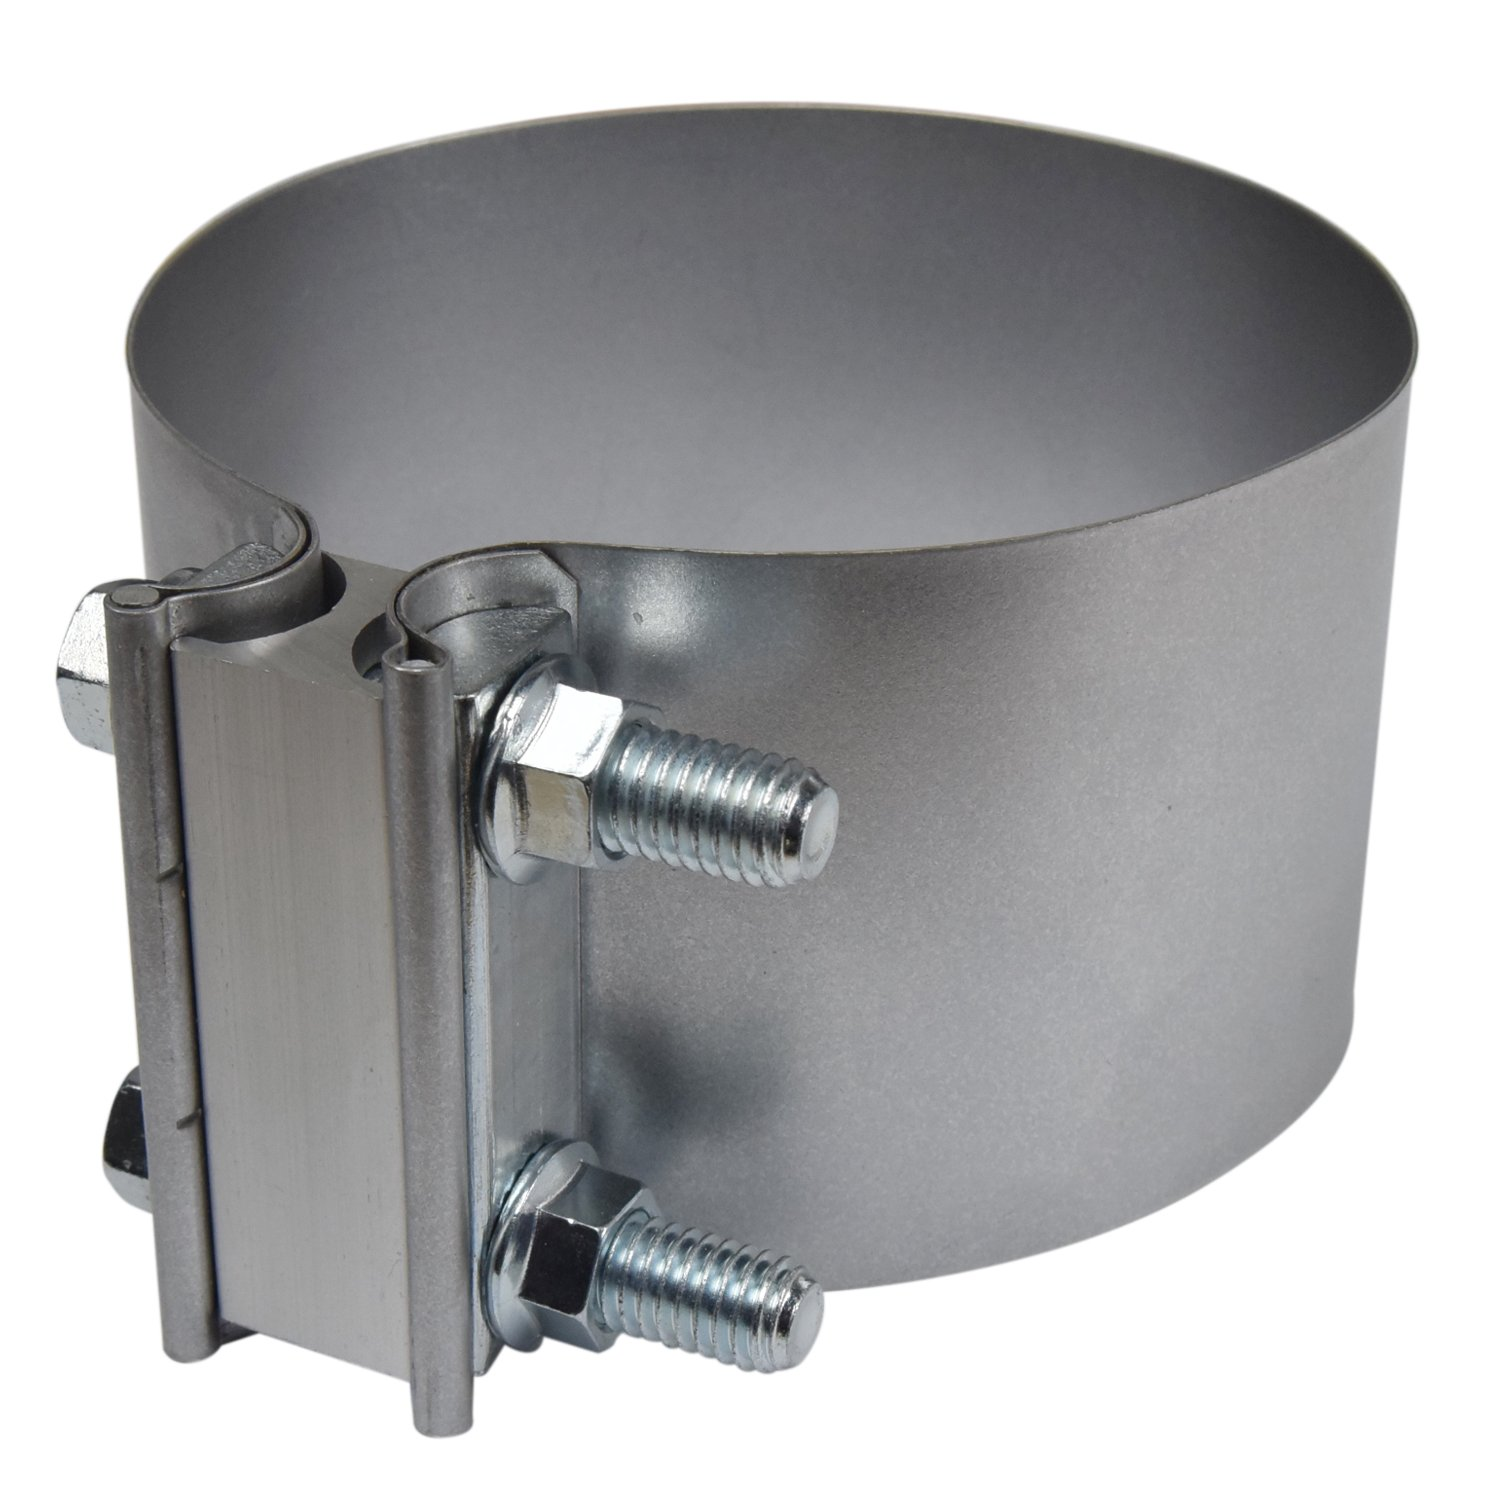 5'' Butt Joint Exhaust Band Clamp - Aluminized Steel for 5'' OD to 5'' OD Exhaust Pipe Connection